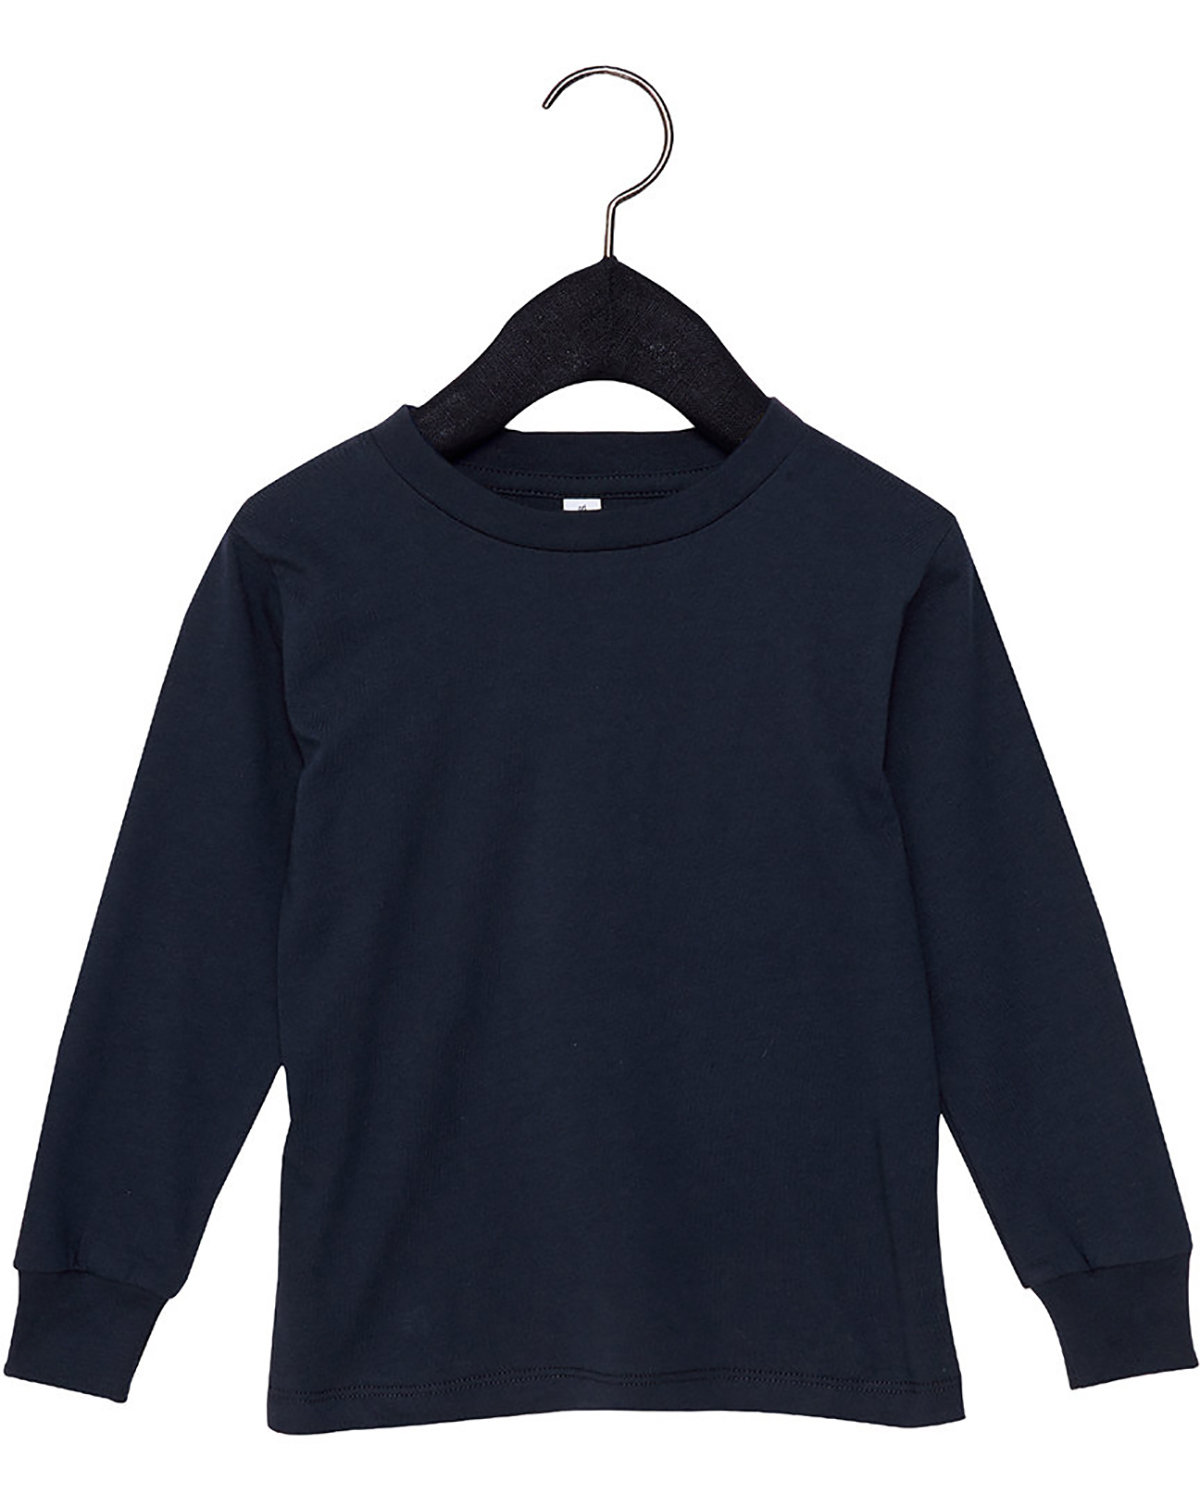 Bella + Canvas Youth Toddler Jersey Long Sleeve T-Shirt NAVY